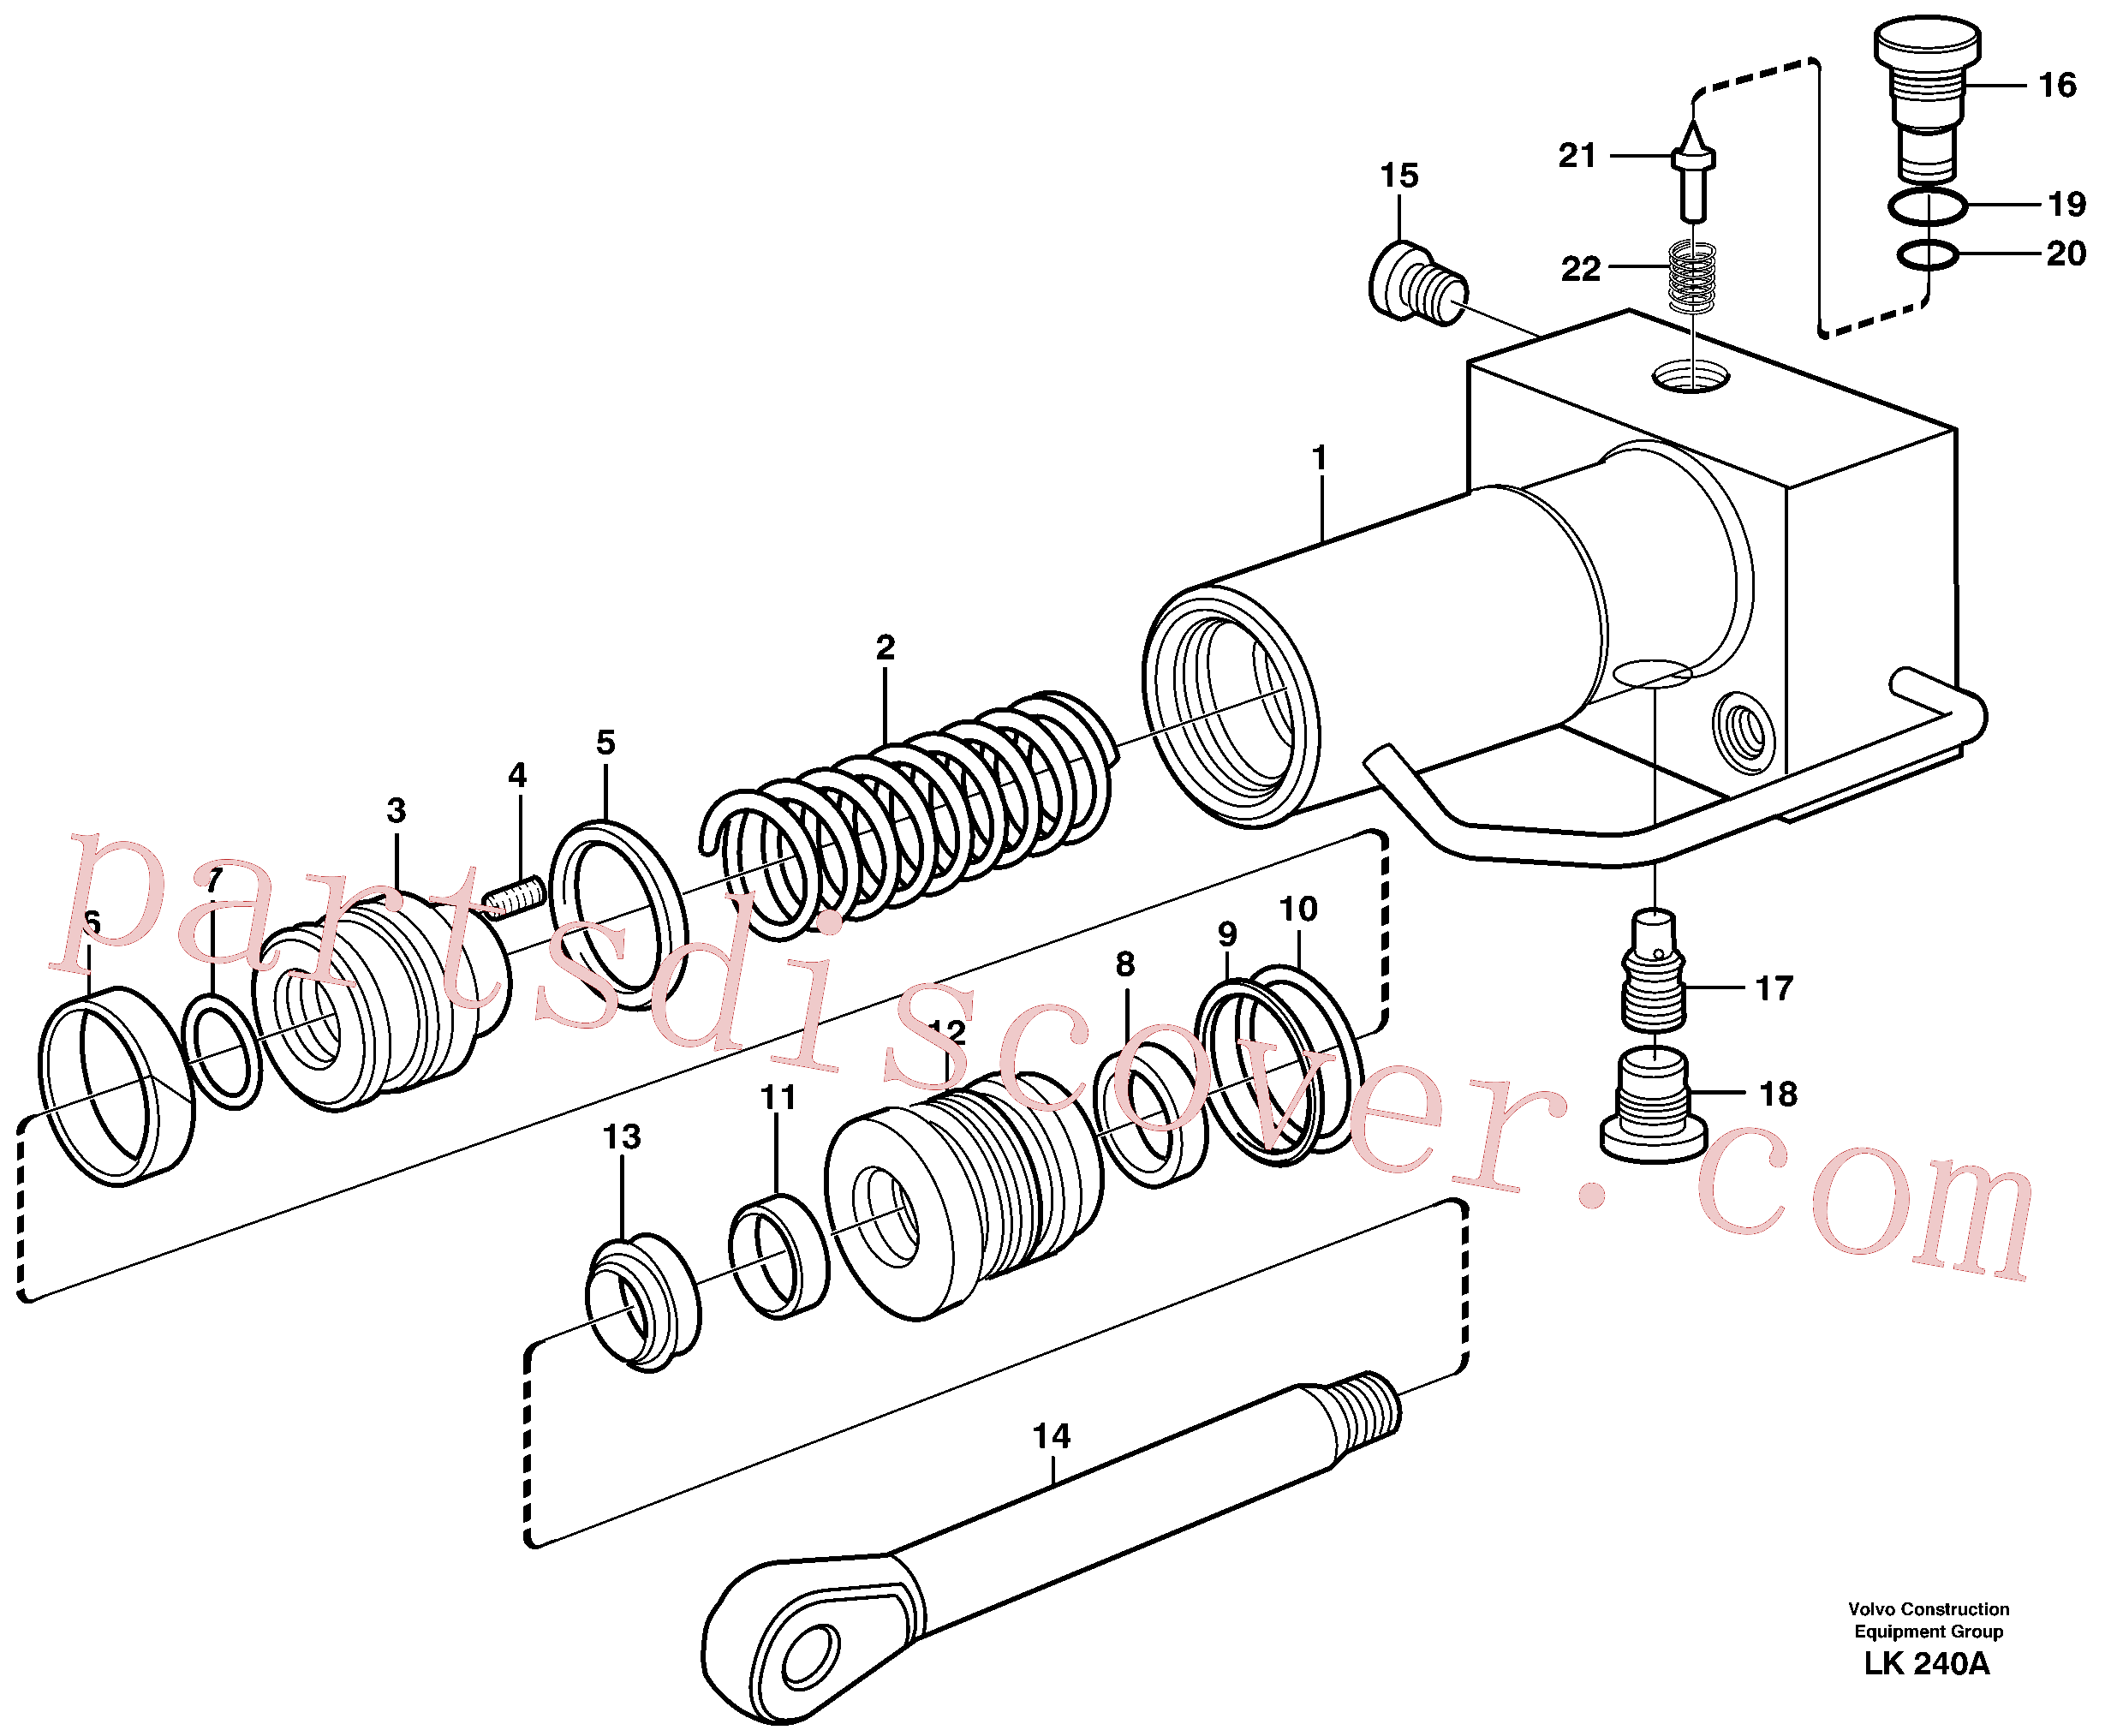 VOE11707594 for Volvo Hydraulic cylinder, quick attachment(LK240A assembly)